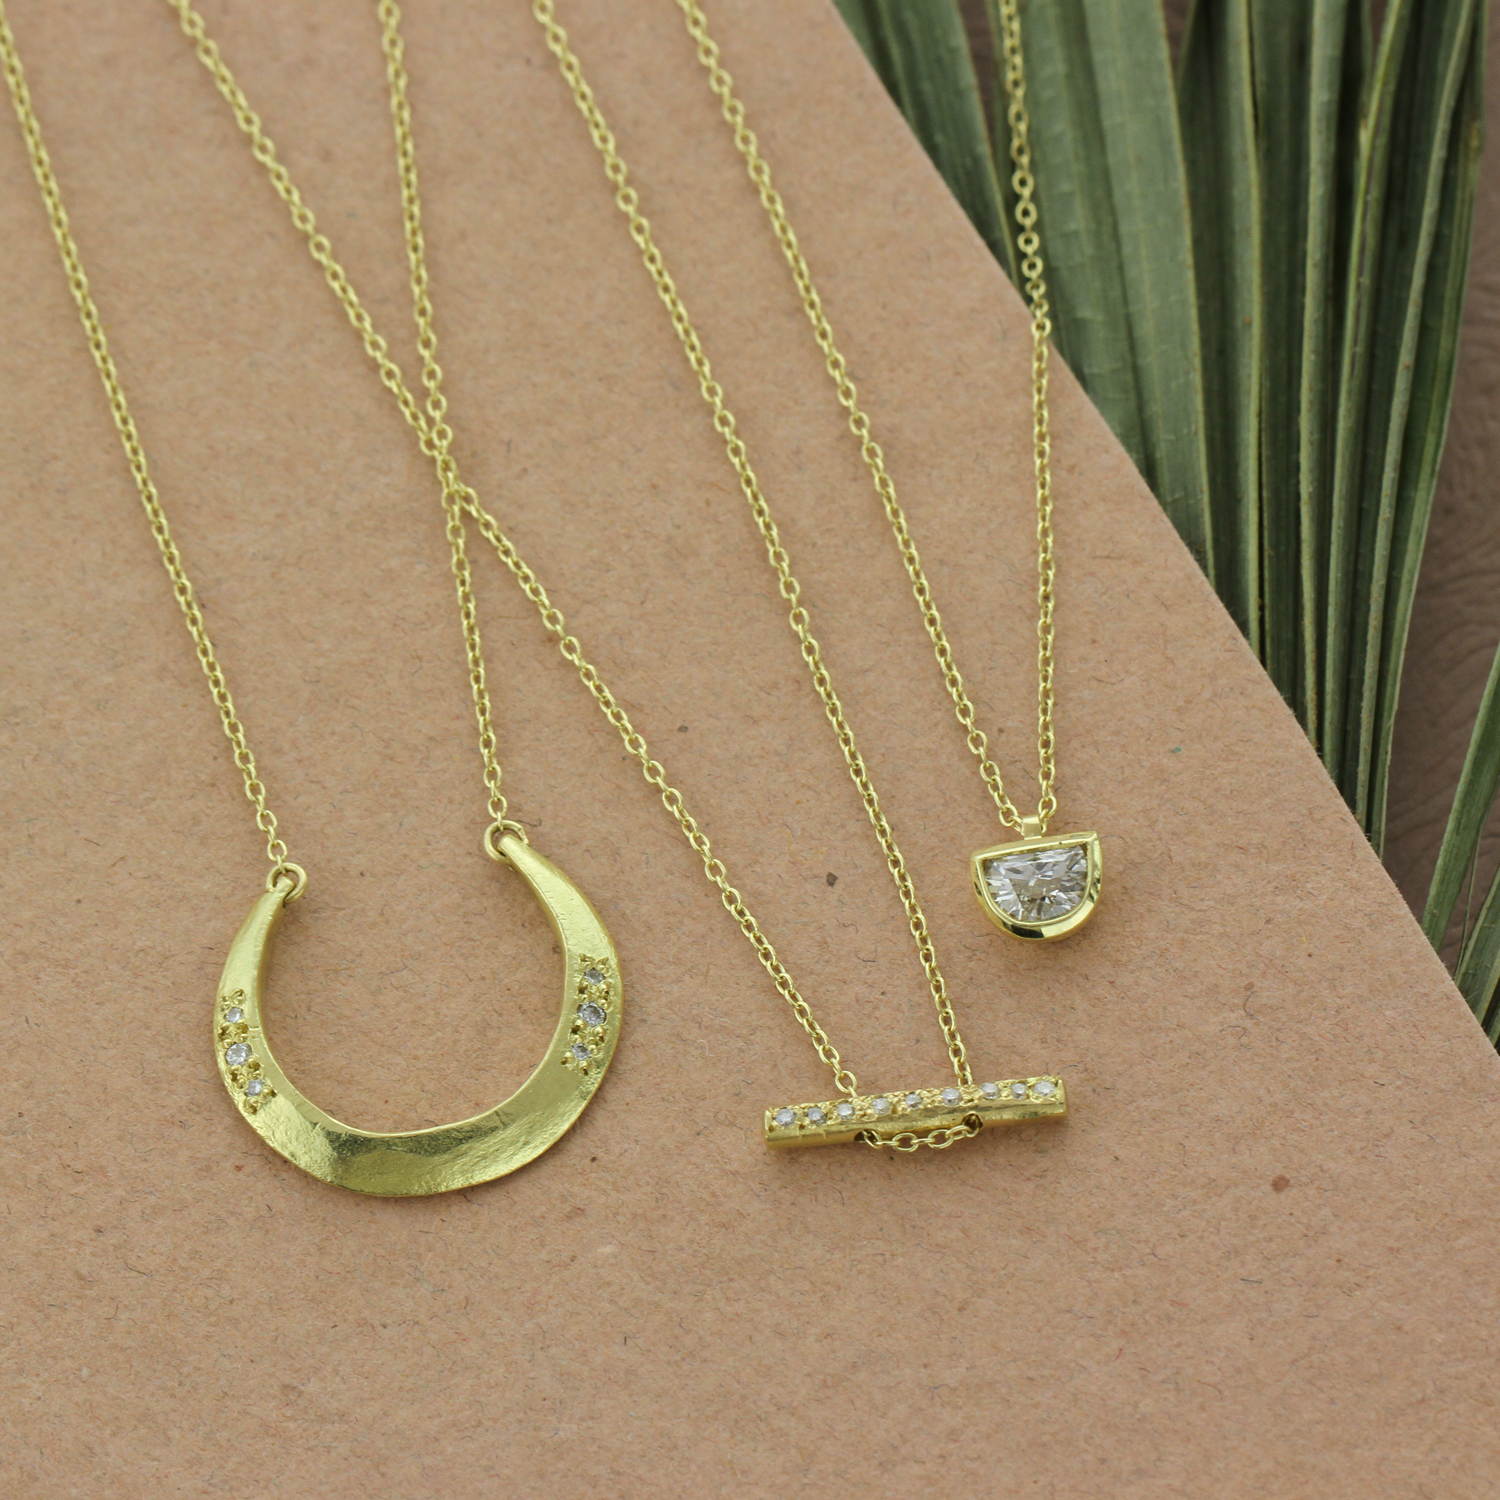 Sophie Hughes 18K and Diamond Necklaces - Sophie Hughes.jpg